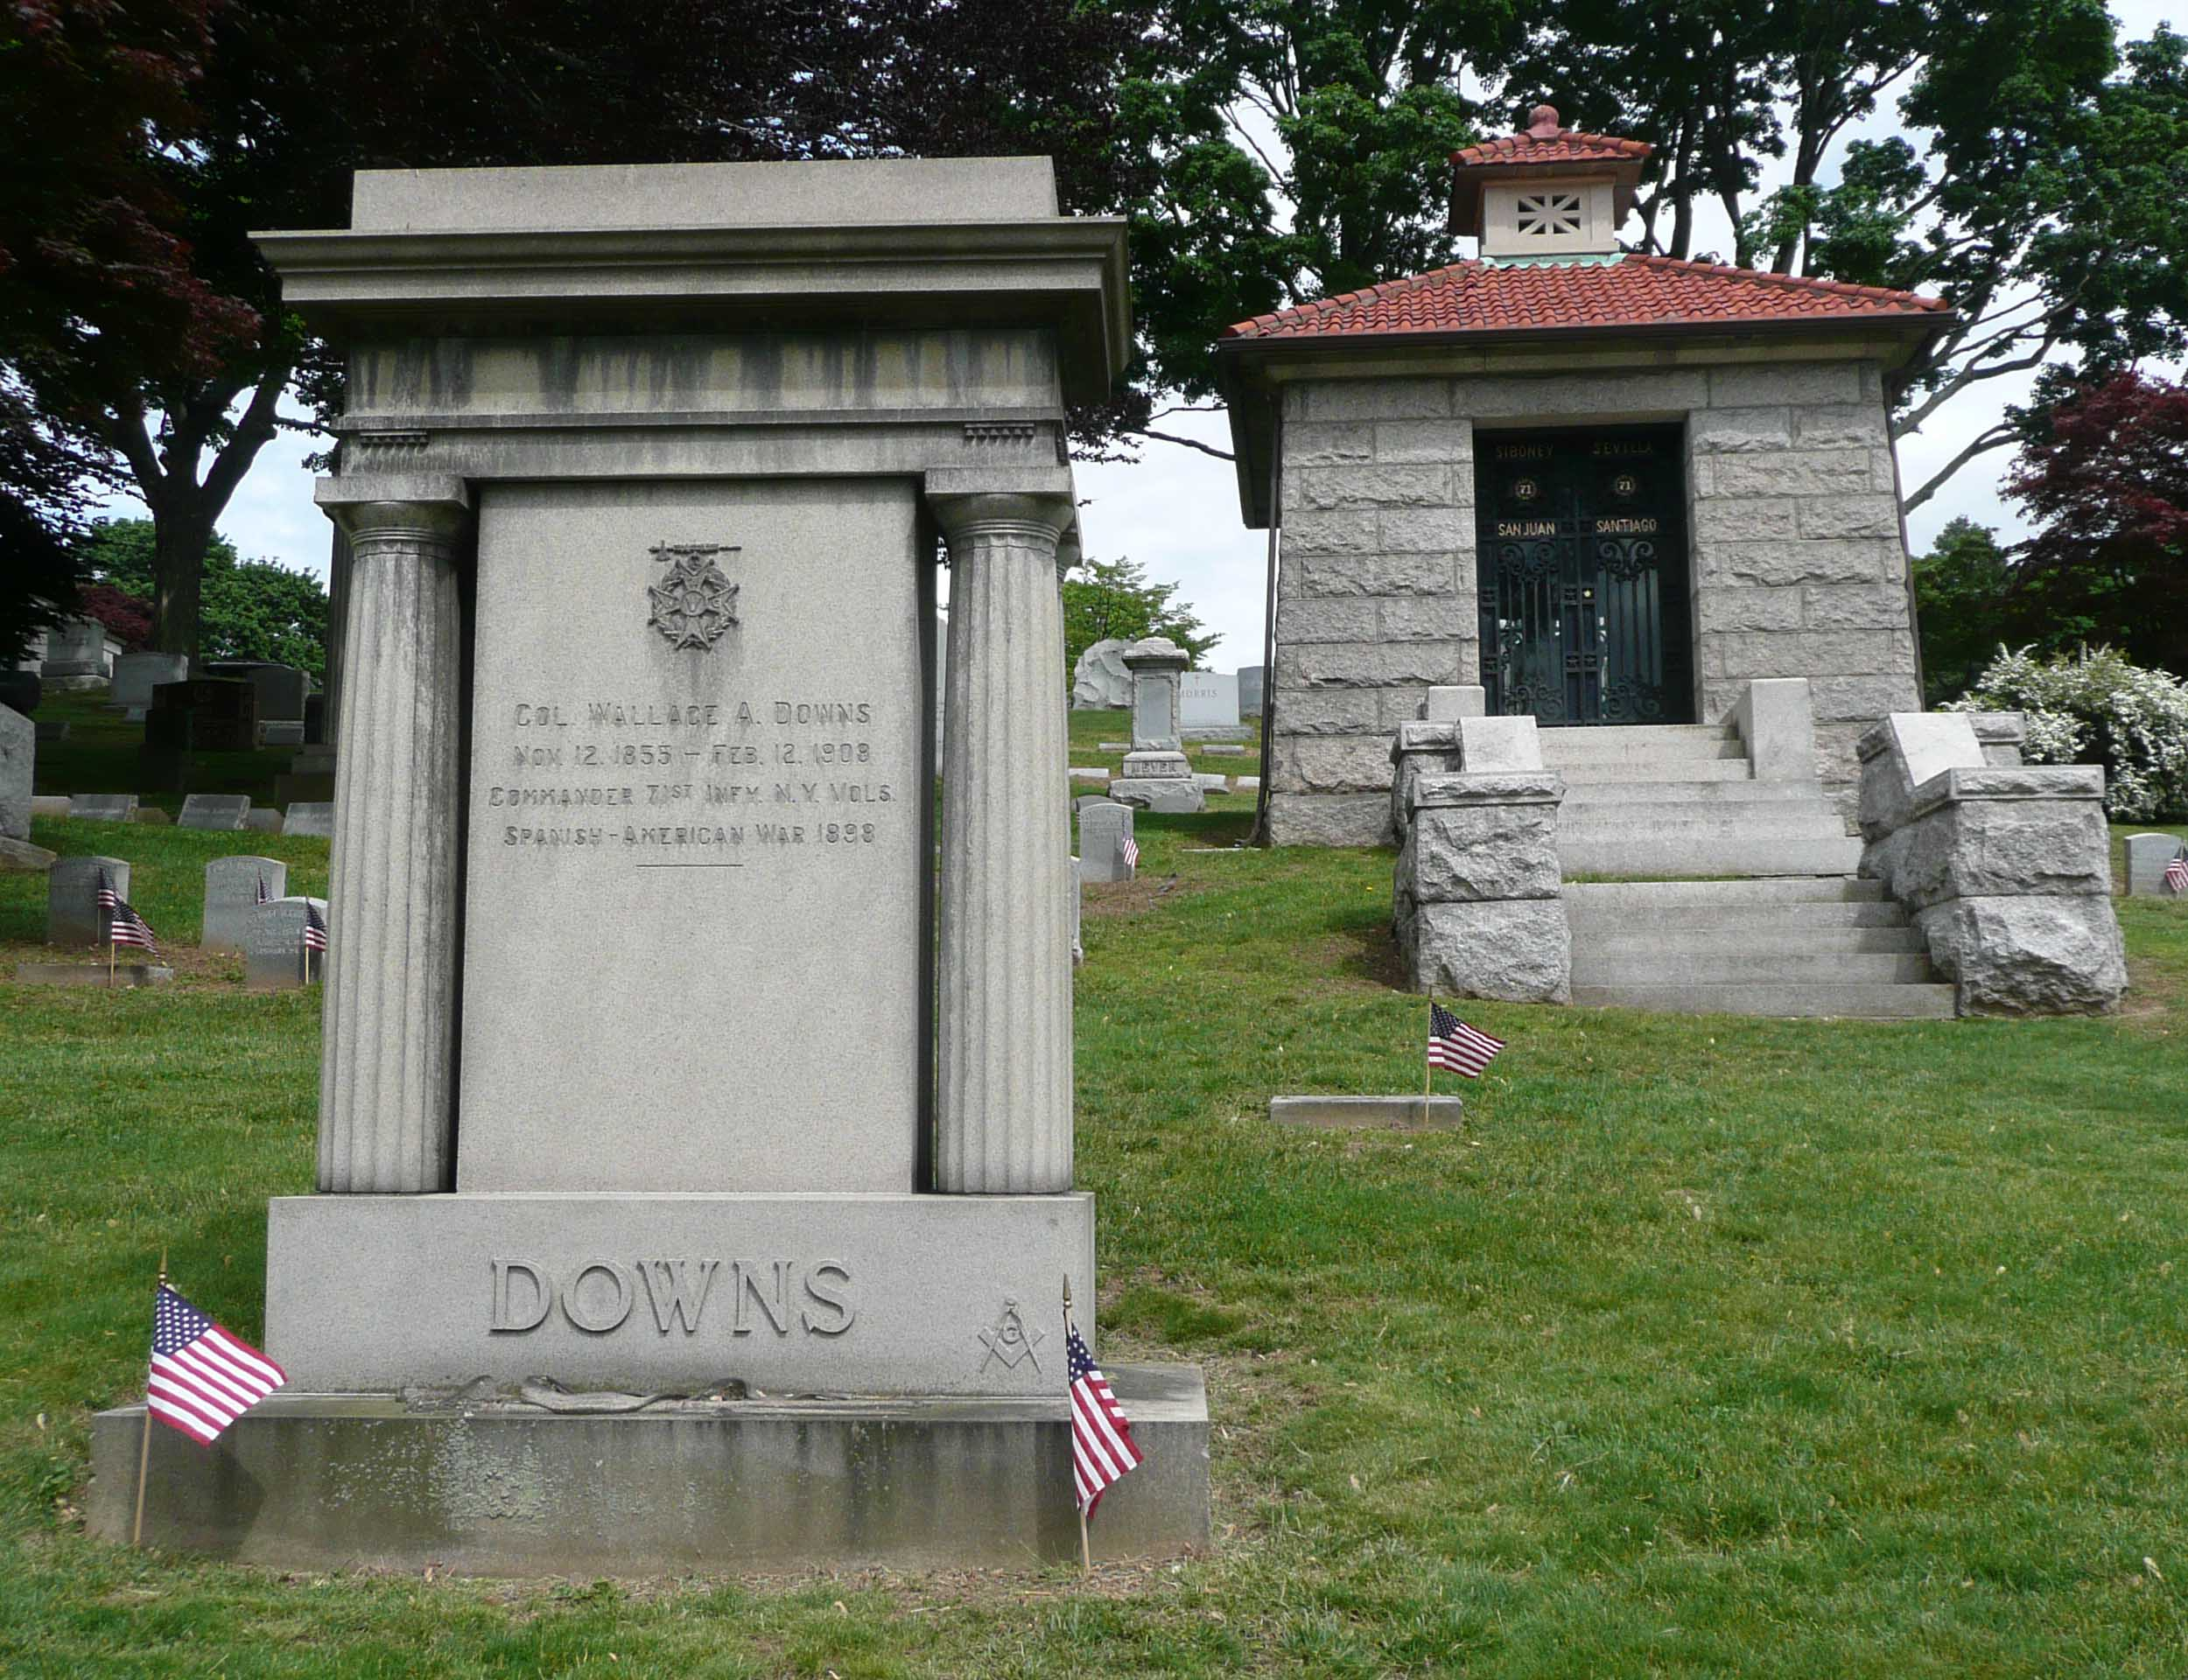 Spanish American War Monument to the 71st Infantry Regiment.  The grave of Colonel Wallace A. Downs, who commanded the regiment during the war, is at left.